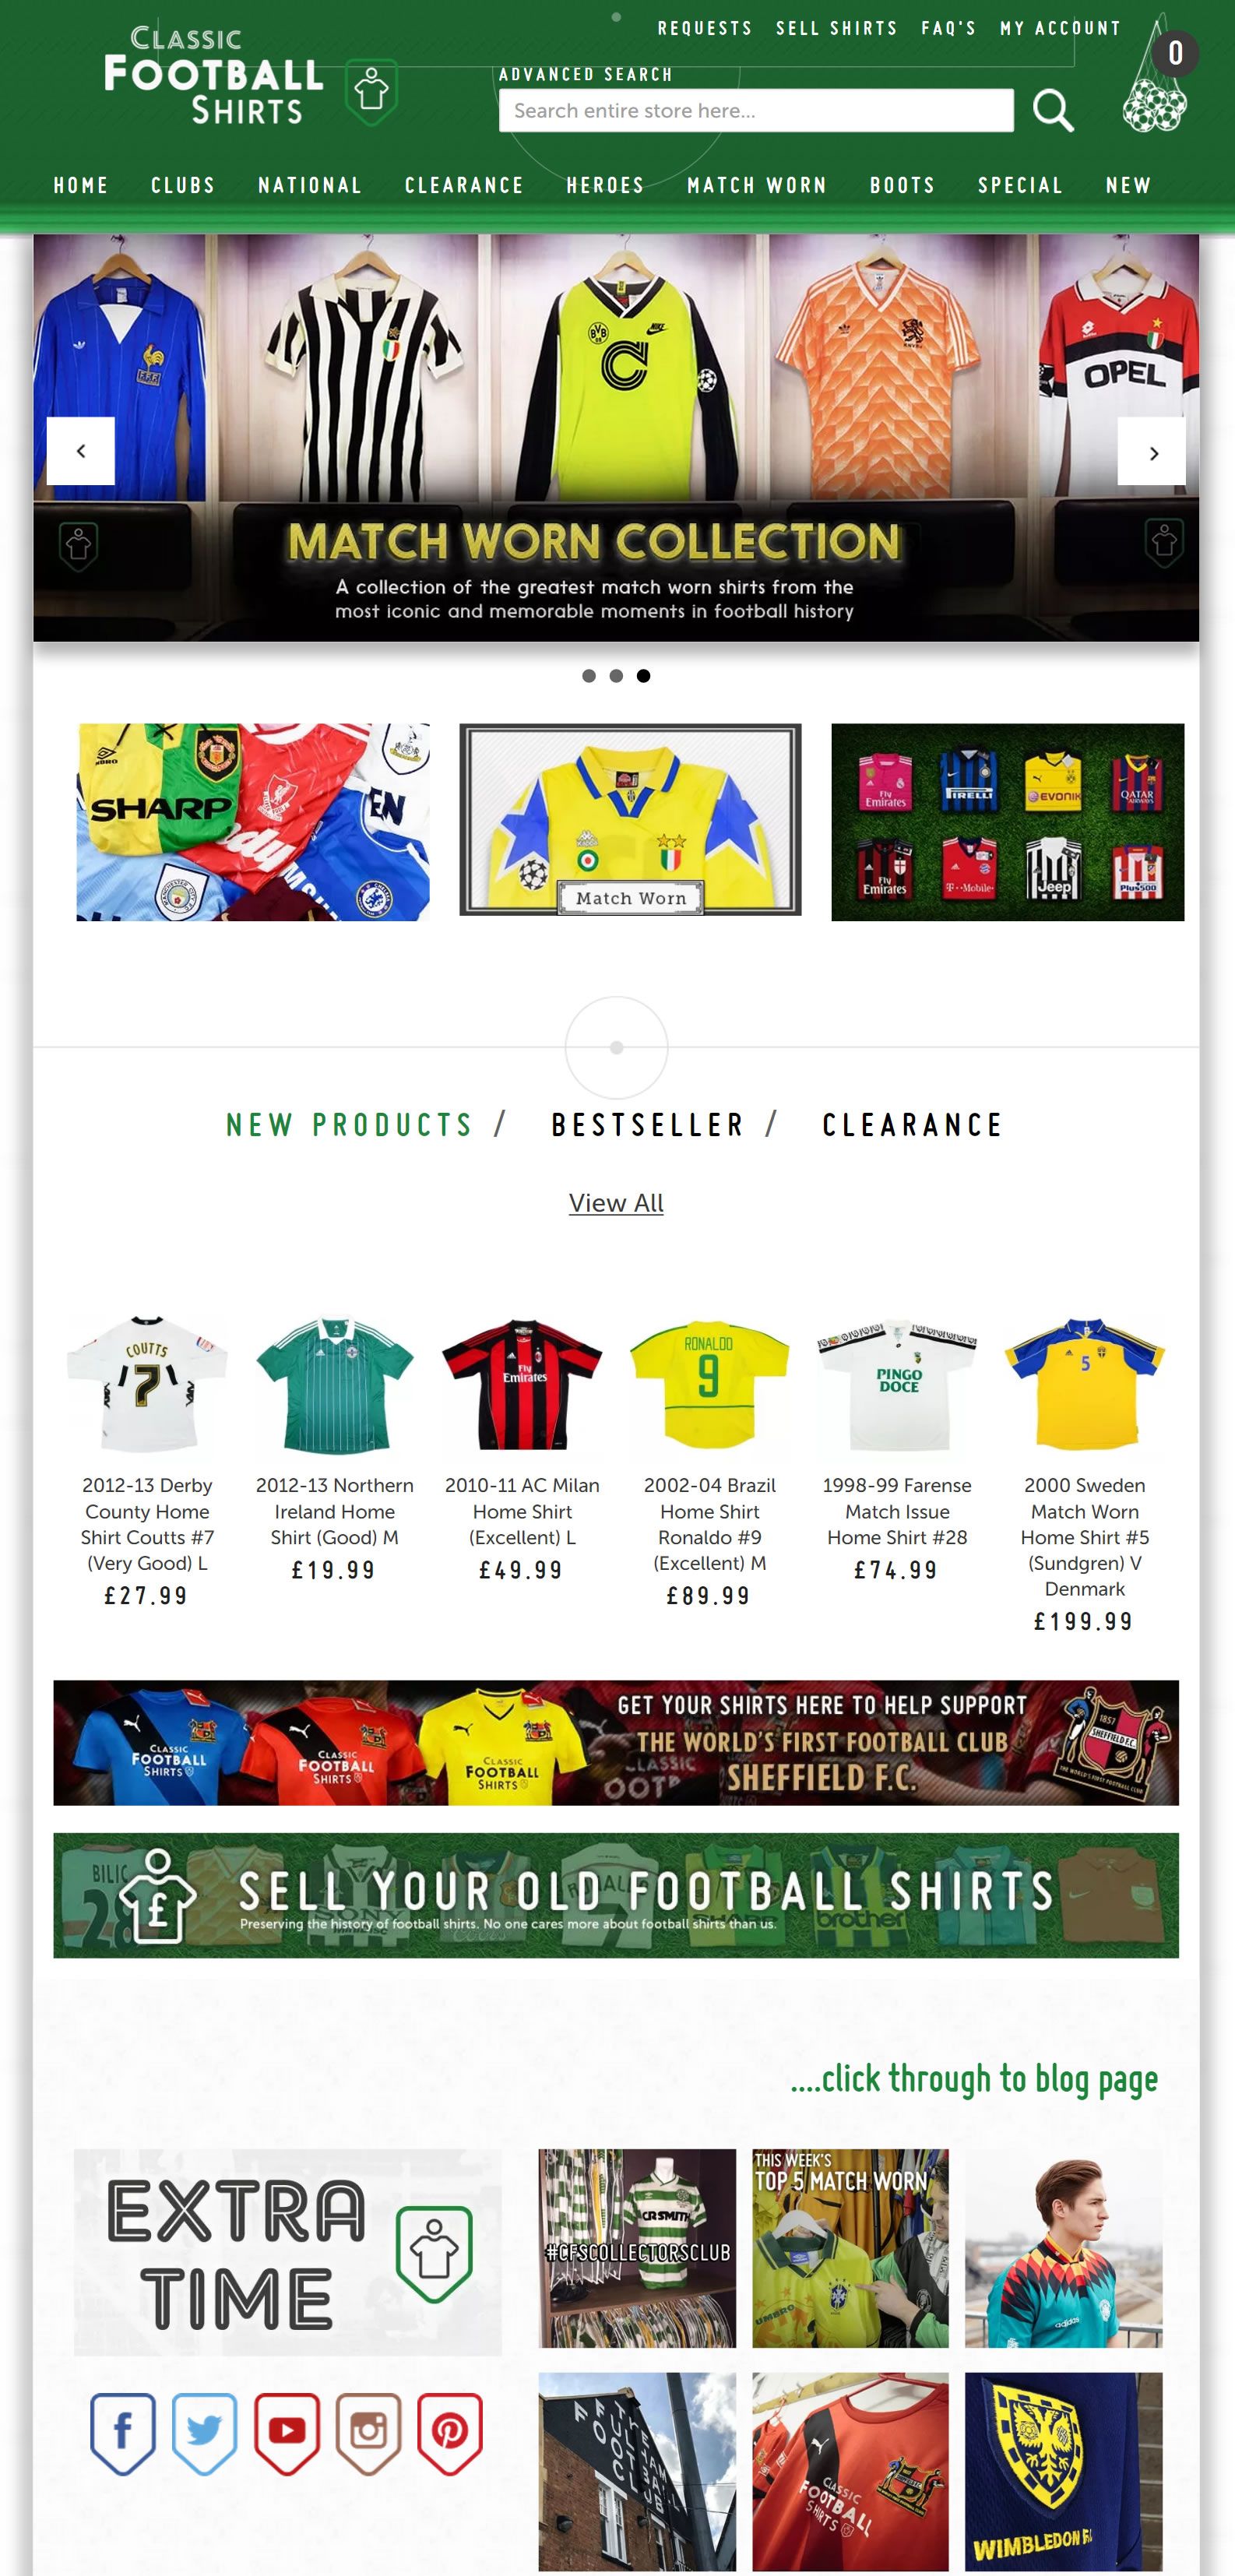 Classic Retro Vintage Football Shirts: Classic Football Shirts